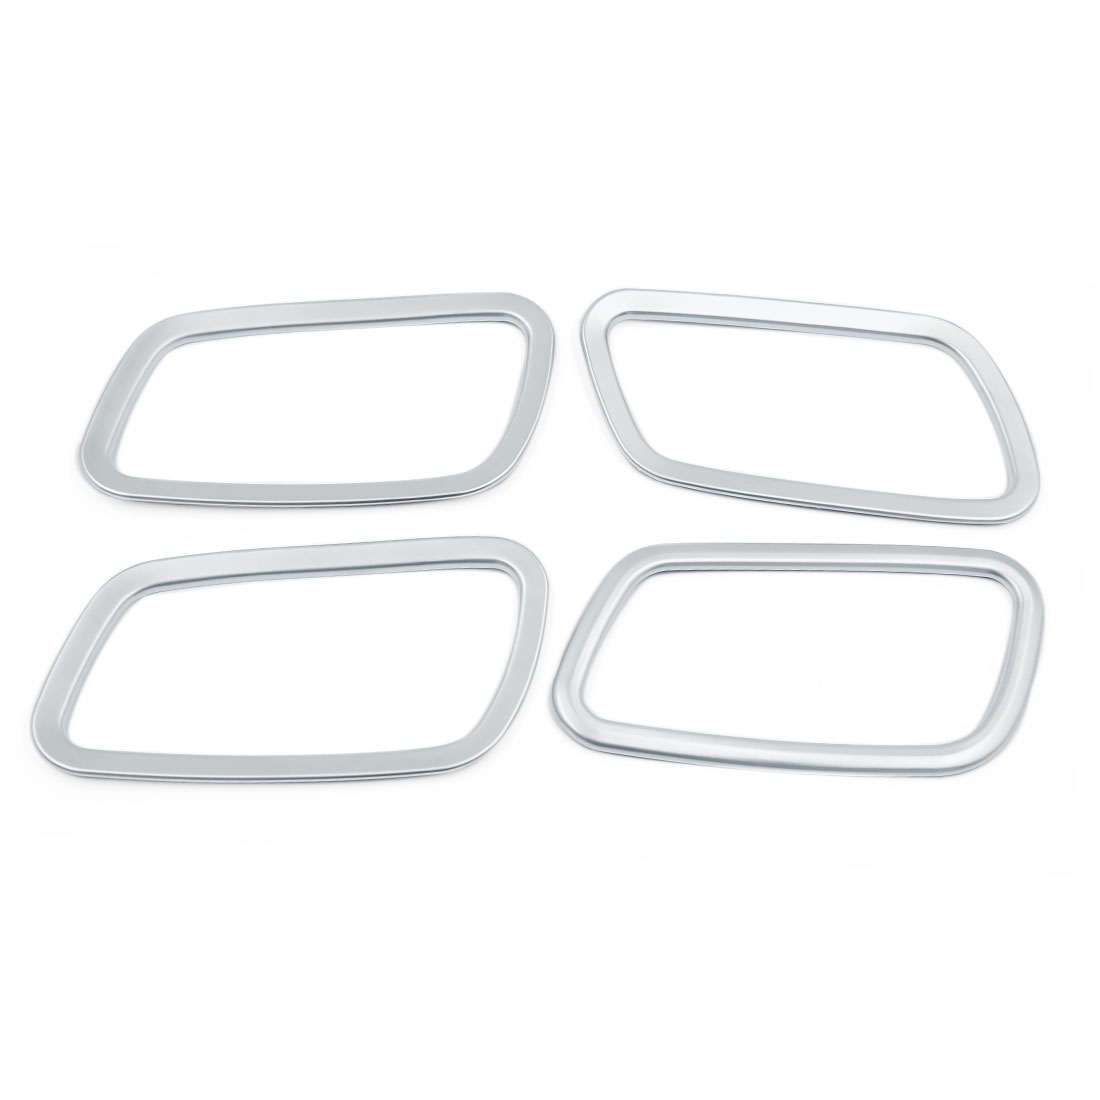 4 Pcs Adhesive Chrome Inner Door Handle Bowl Frame Cover Trim for Honda CRV CR-V 2015